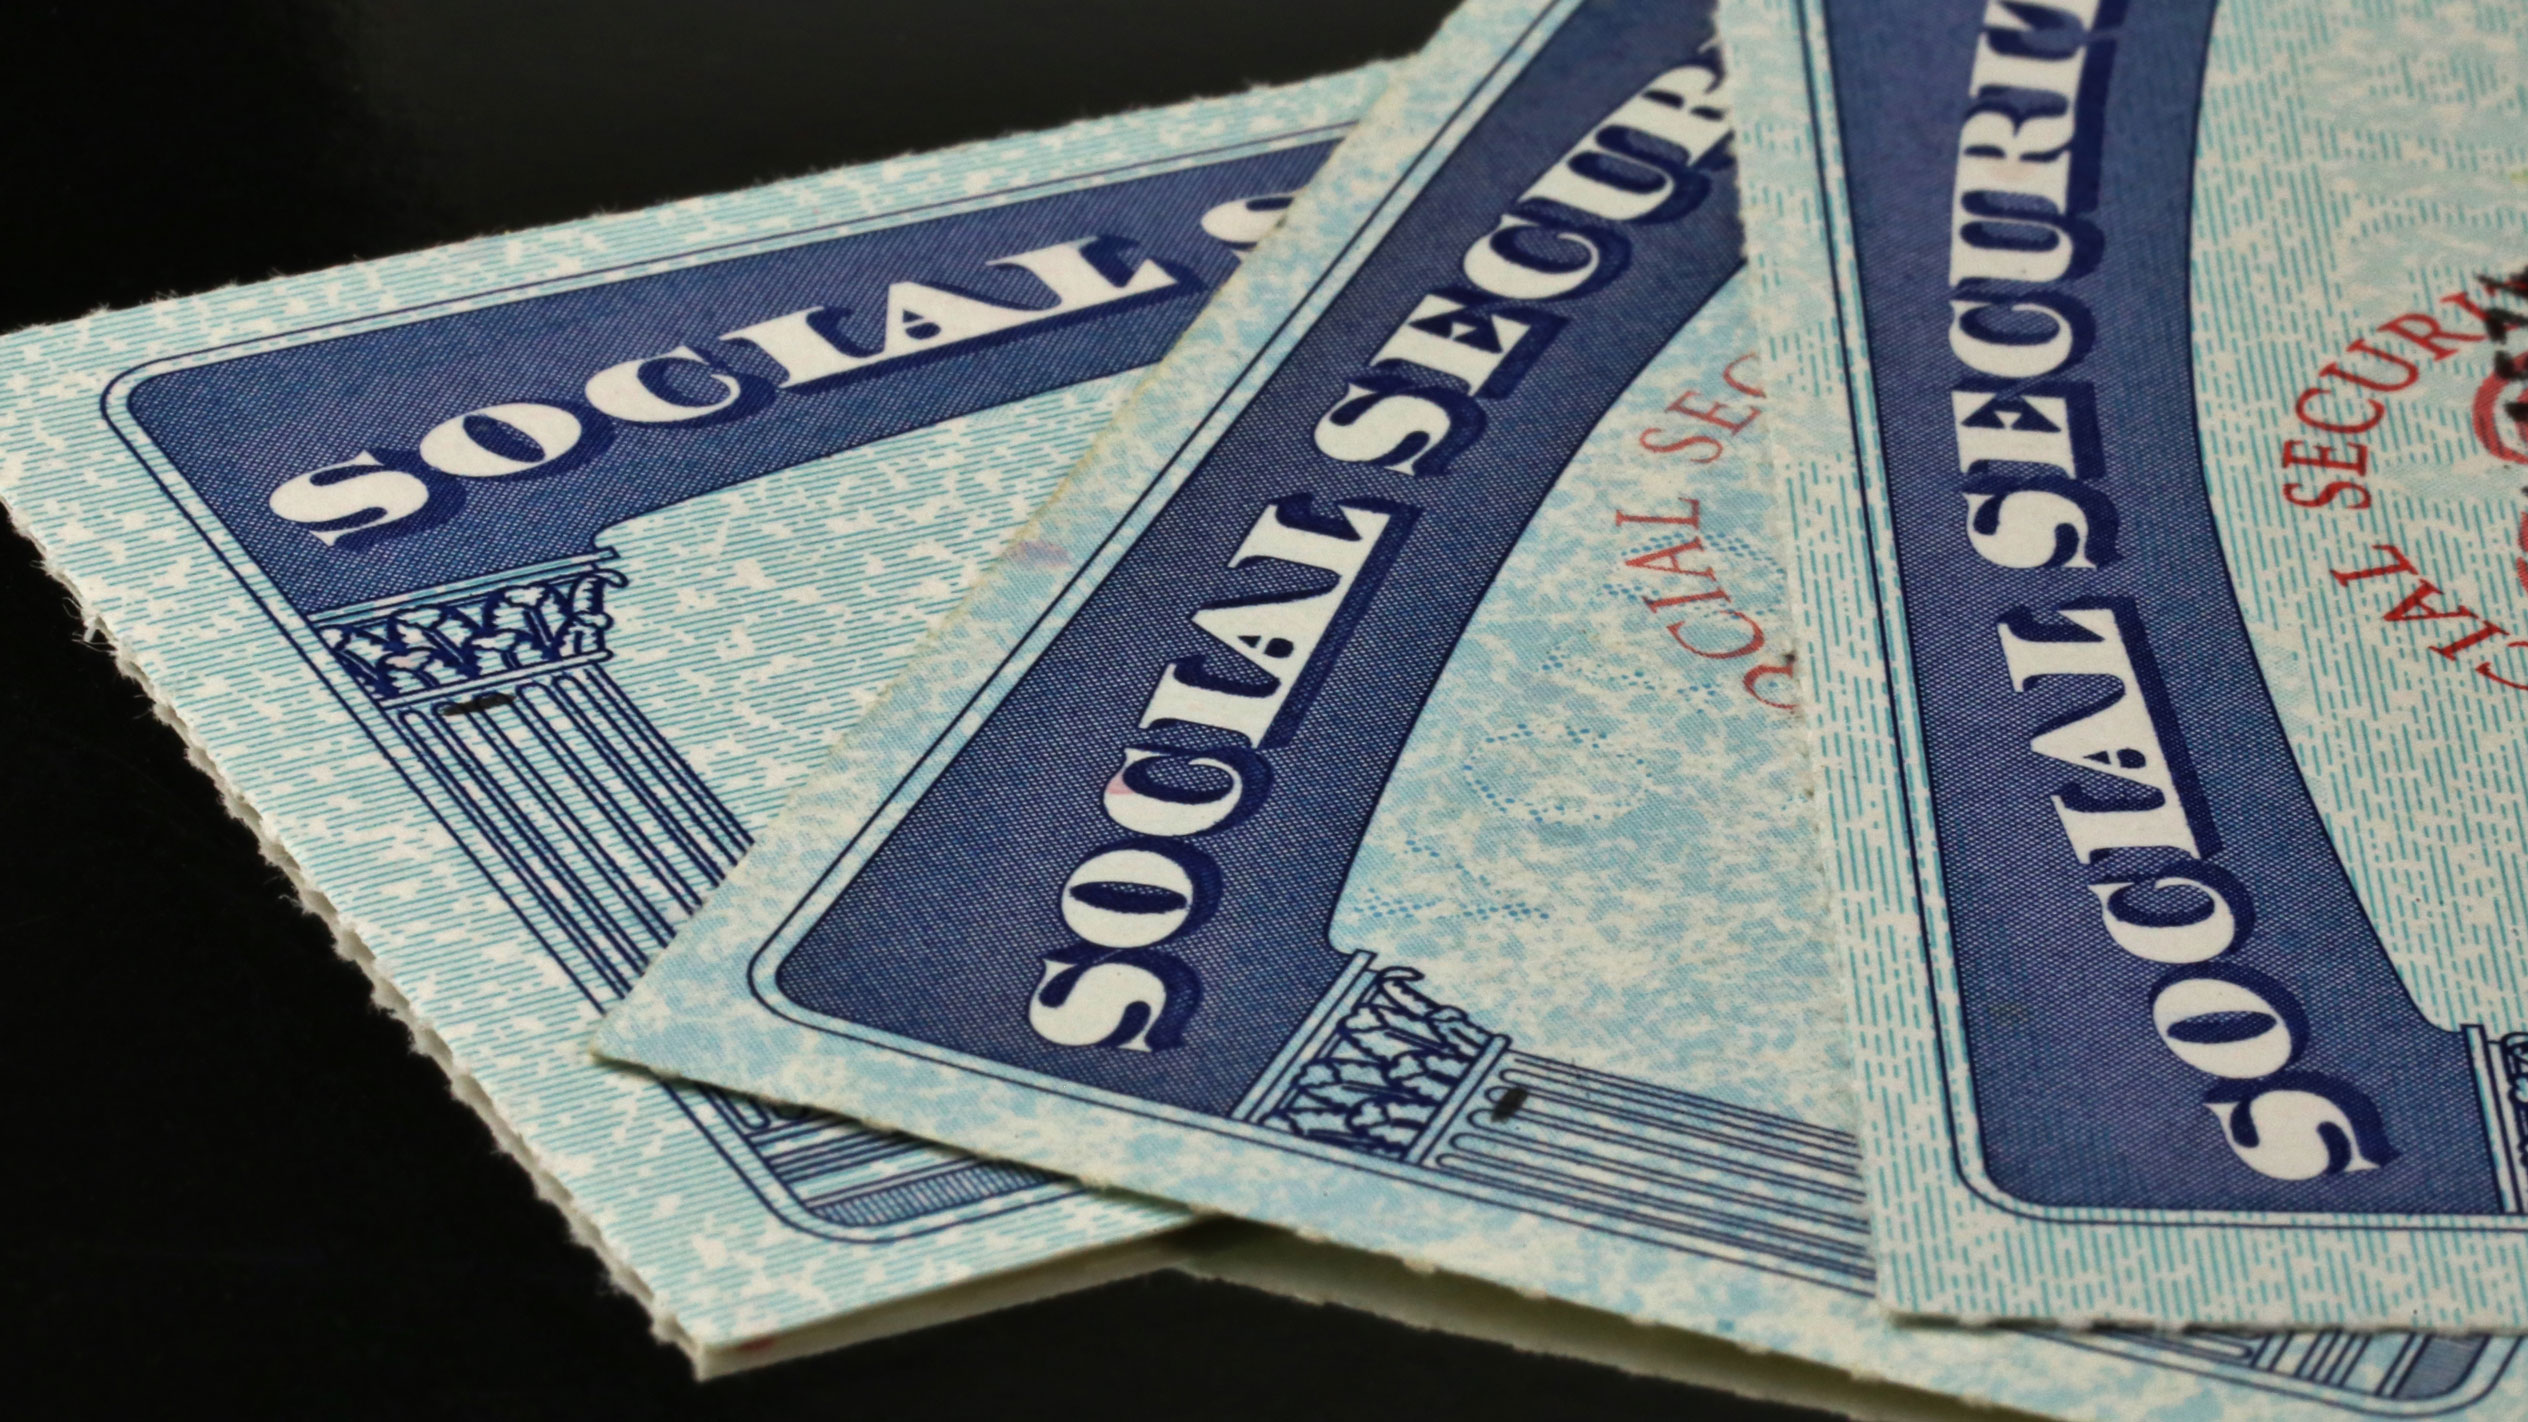 Senators push to ditch Social Security numbers in light of Equifax hack